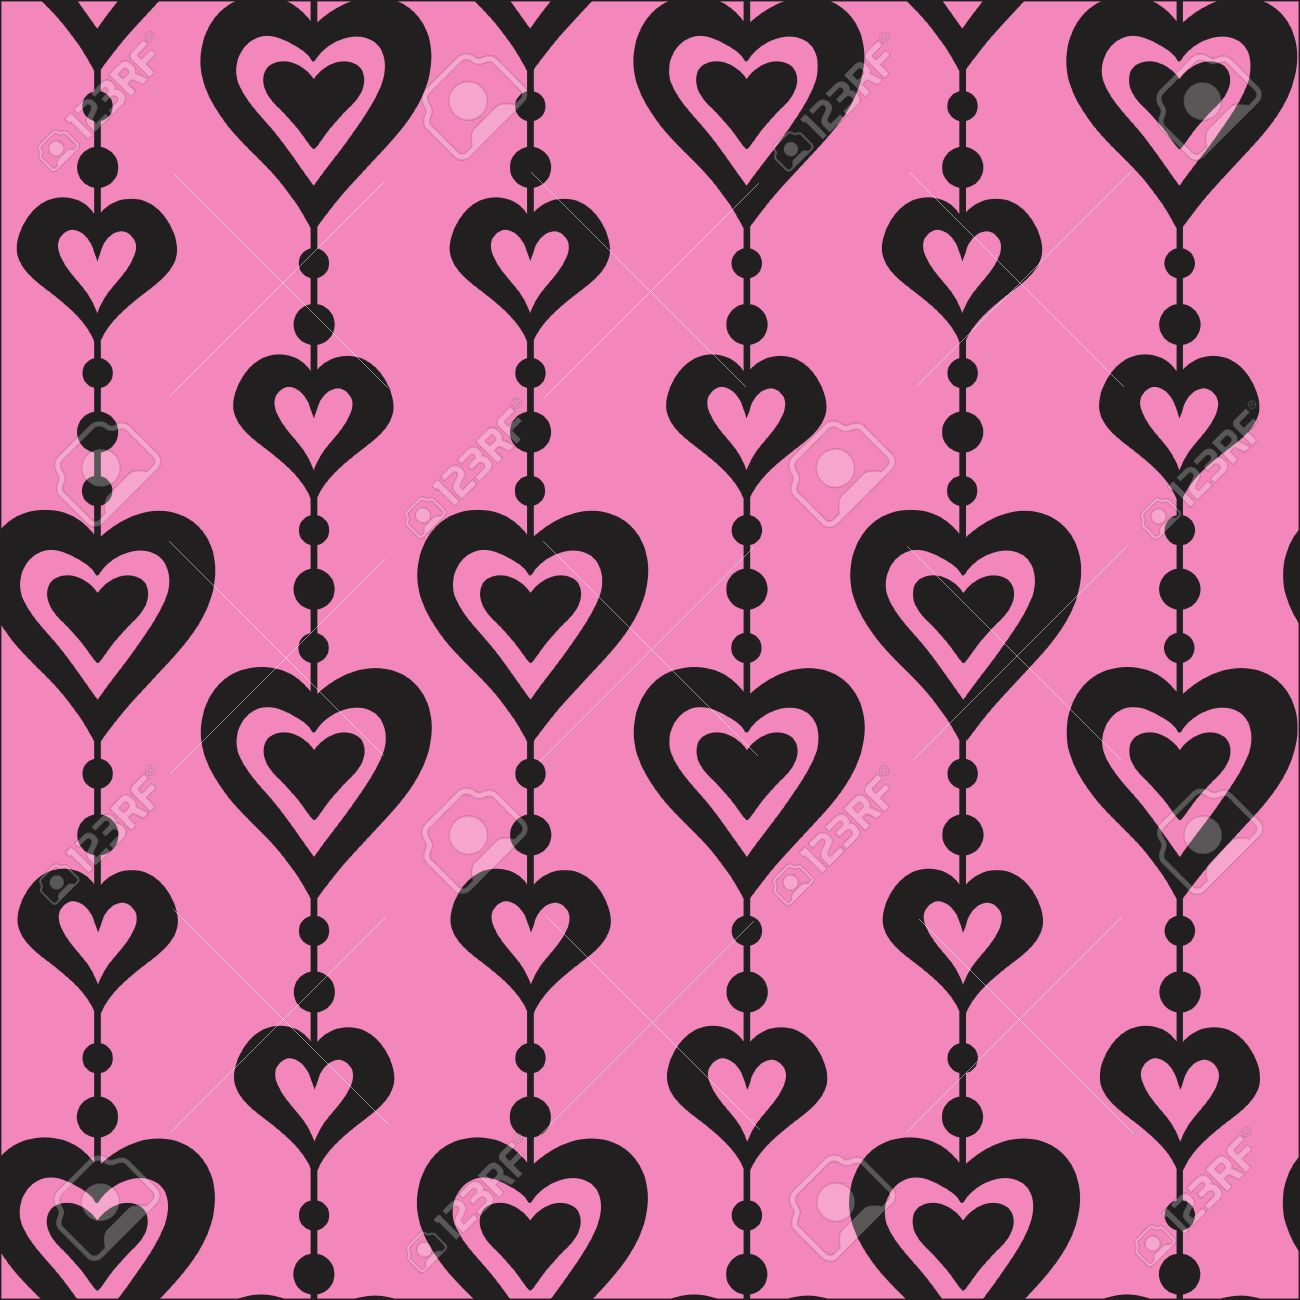 Pink And Black Hearts And Pearls Vector Seamless Pattern. Love.